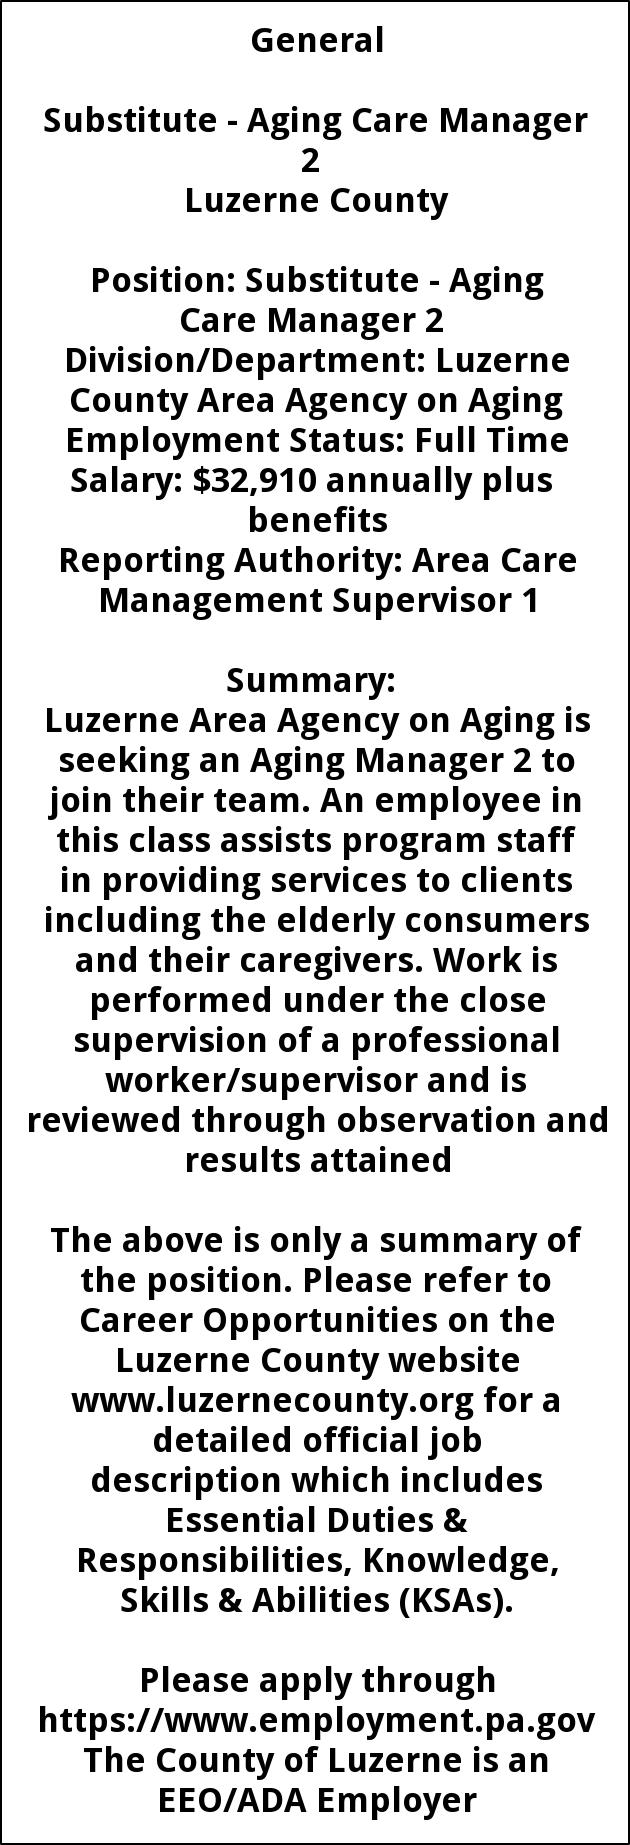 Aging Case Manager 2, Luzerne County